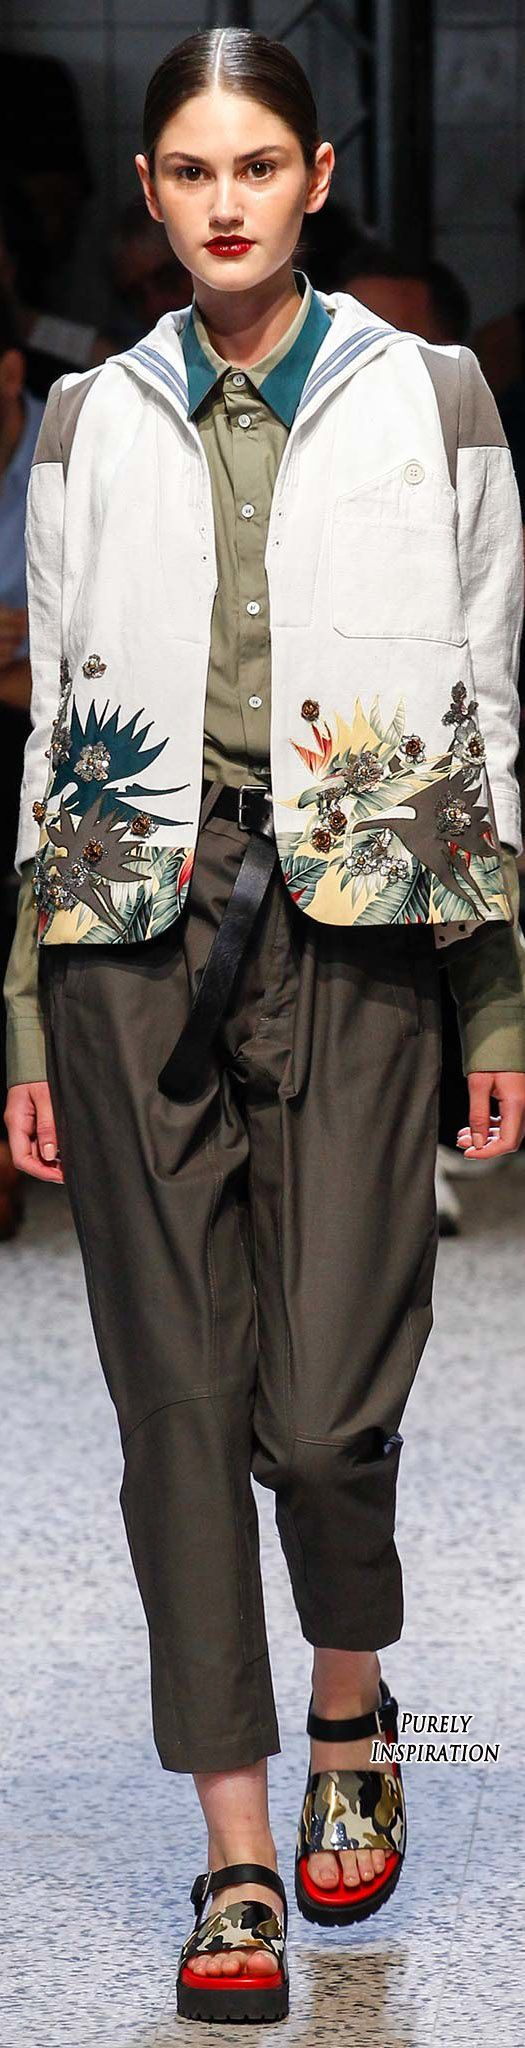 Antonio Marras SS2016 Women's Fashion RTW | Purely Inspiration